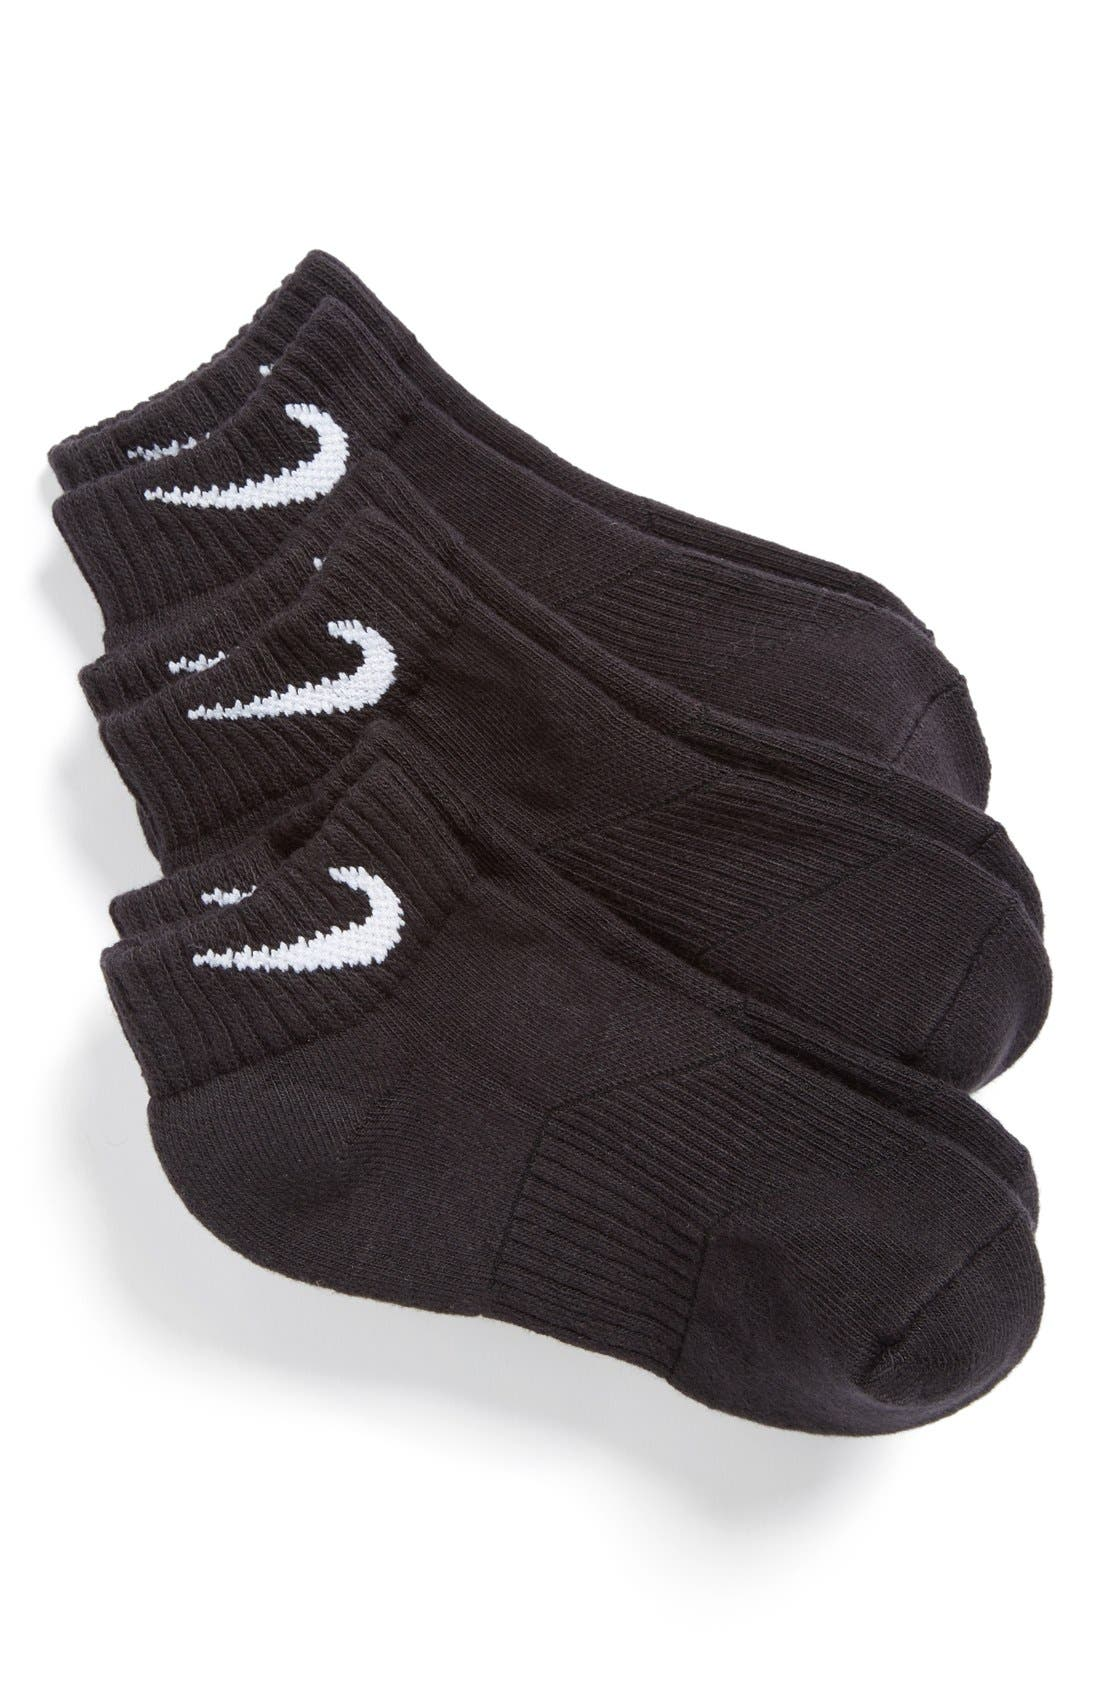 Nike 3-Pack Cushioned Low Cut Socks (Walker, Toddler, Little Kid & Big Kid)